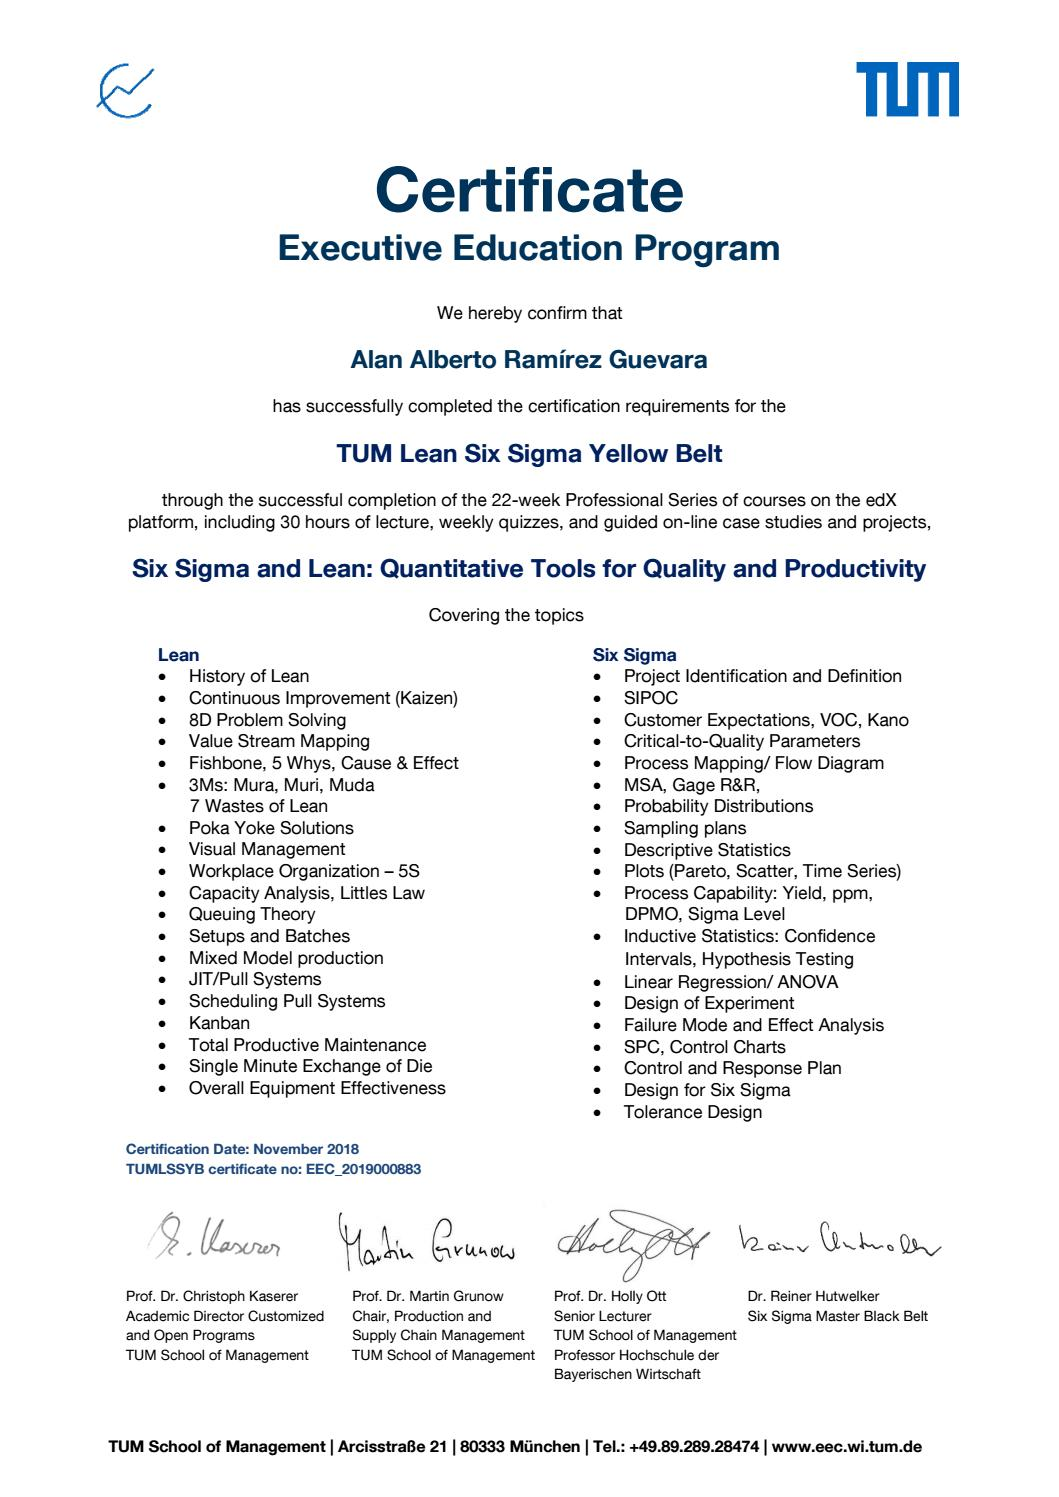 Tum Lean Six Sigma Yellow Belt By Alan Alberto Ram U00edrez Guevara